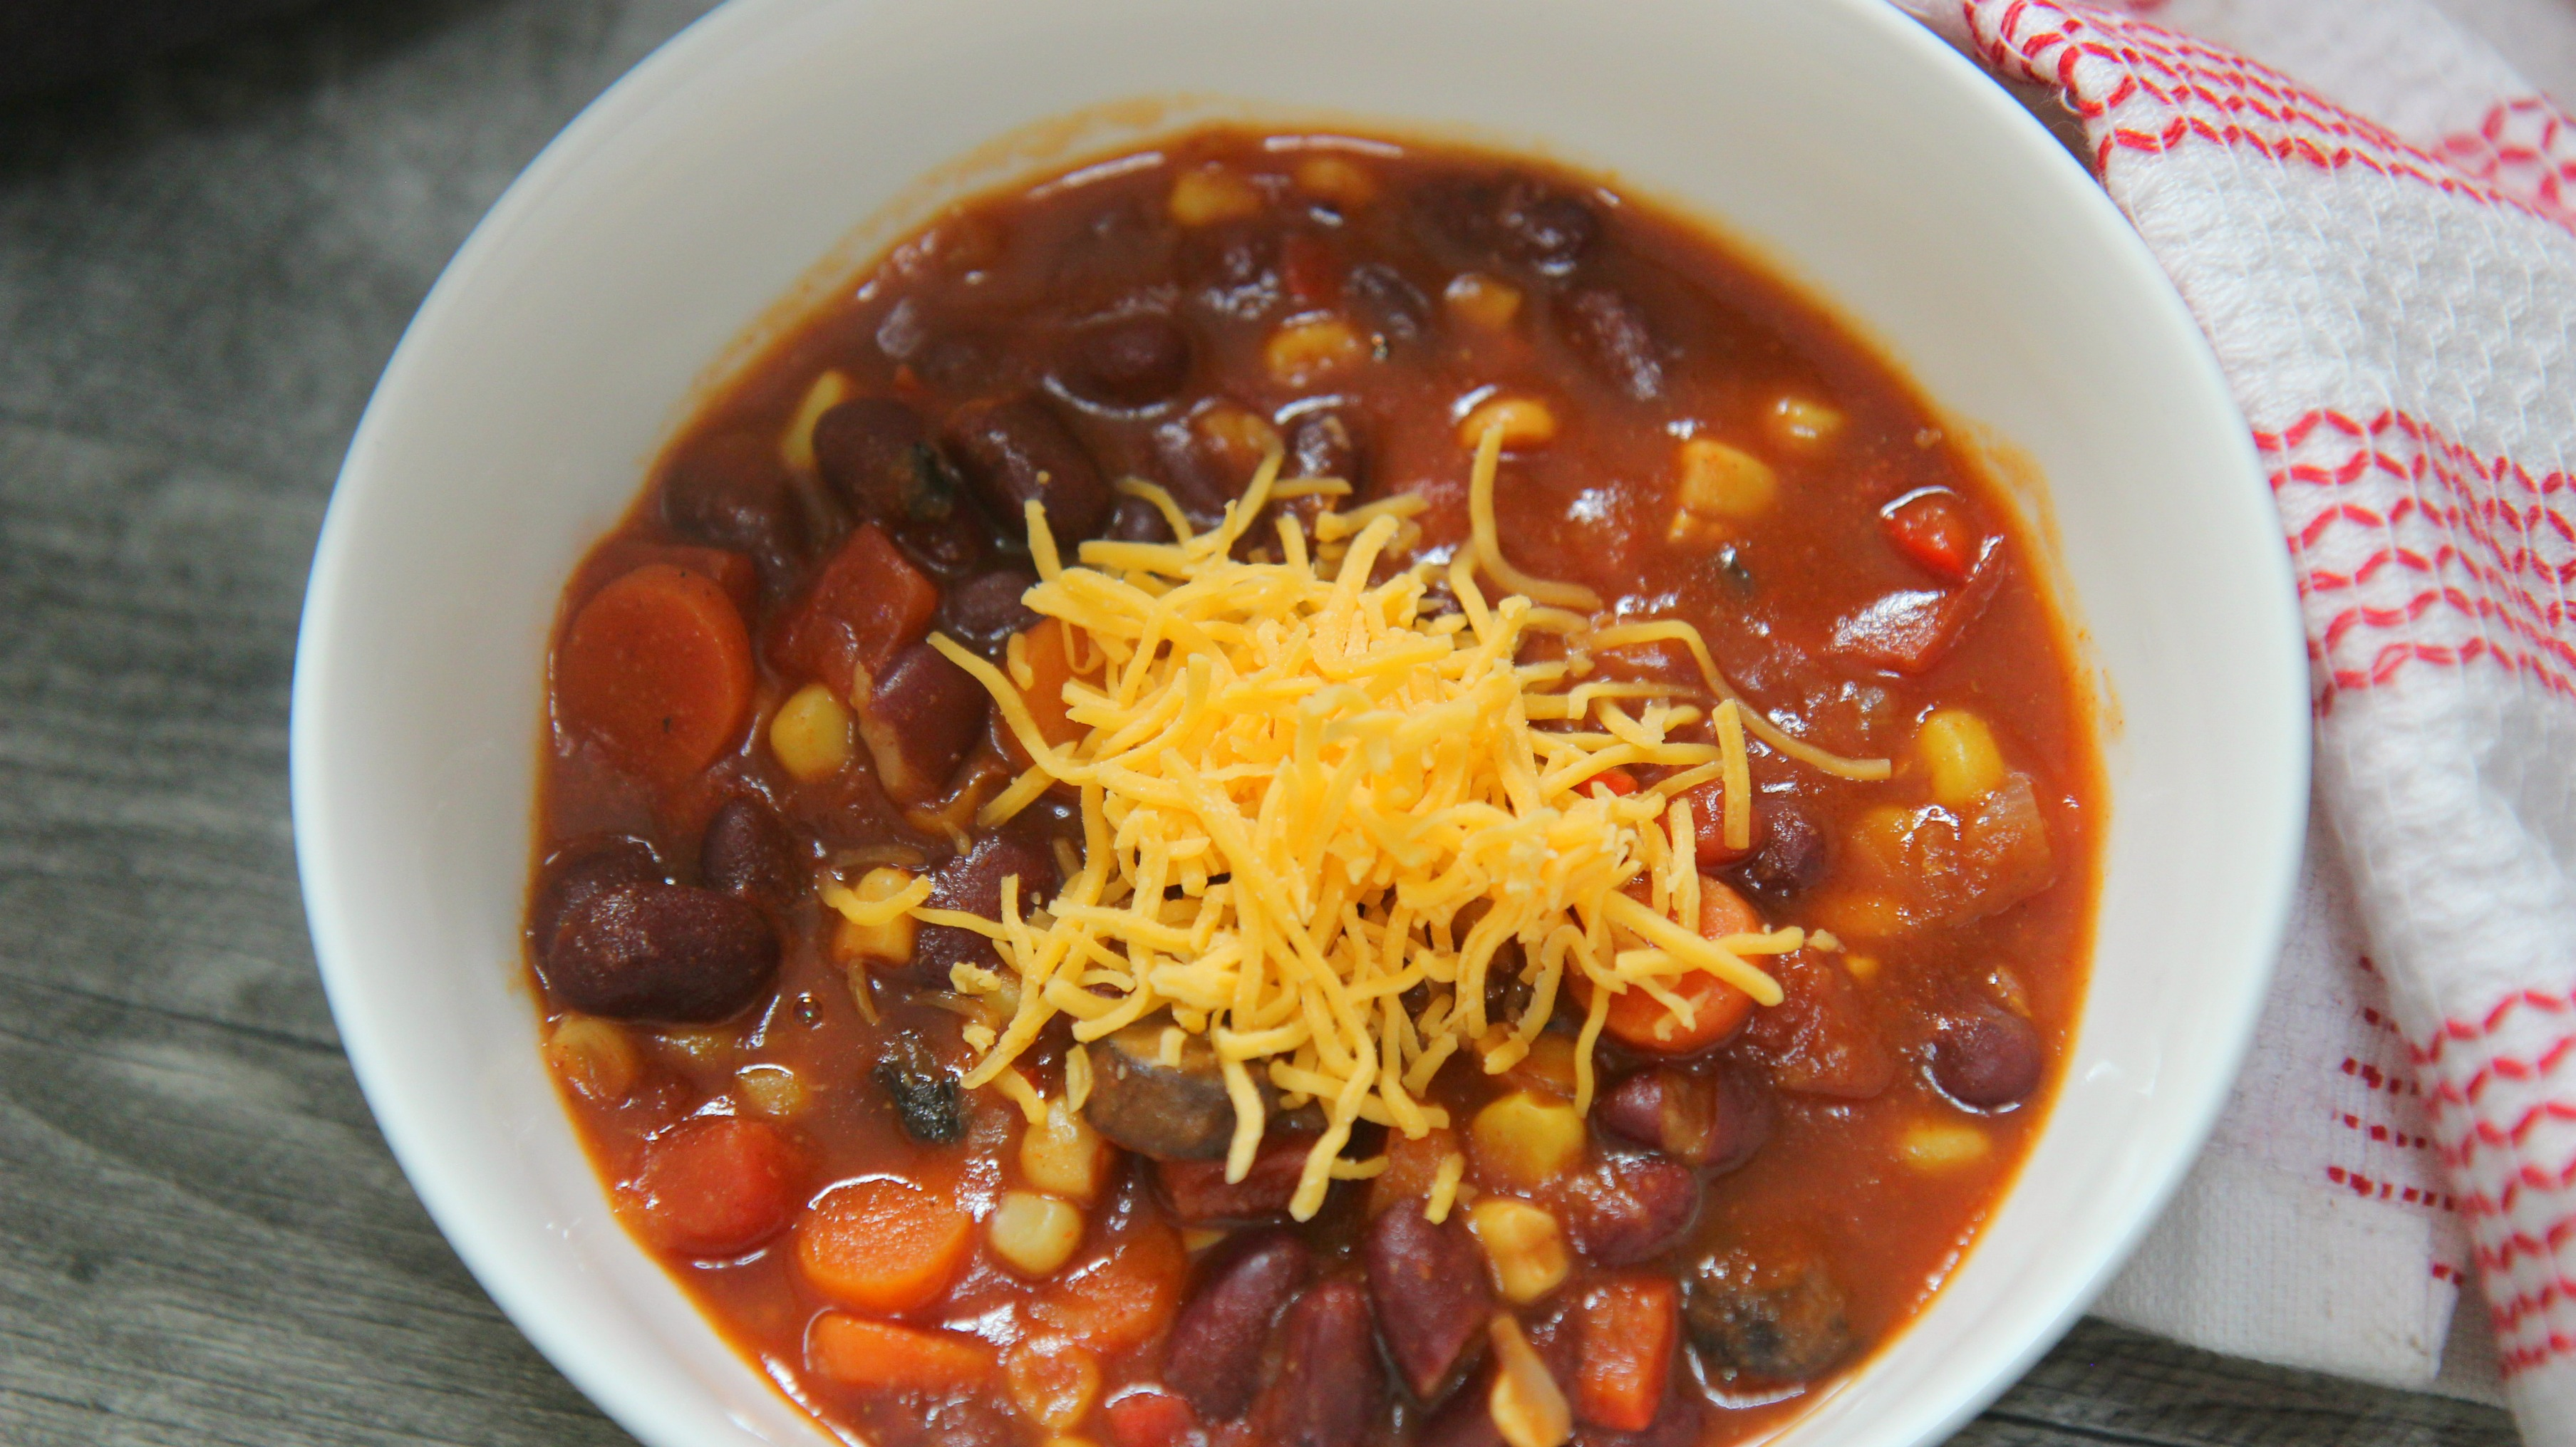 Vegetarian chili served with cheese makes a perfect cold winter night meal